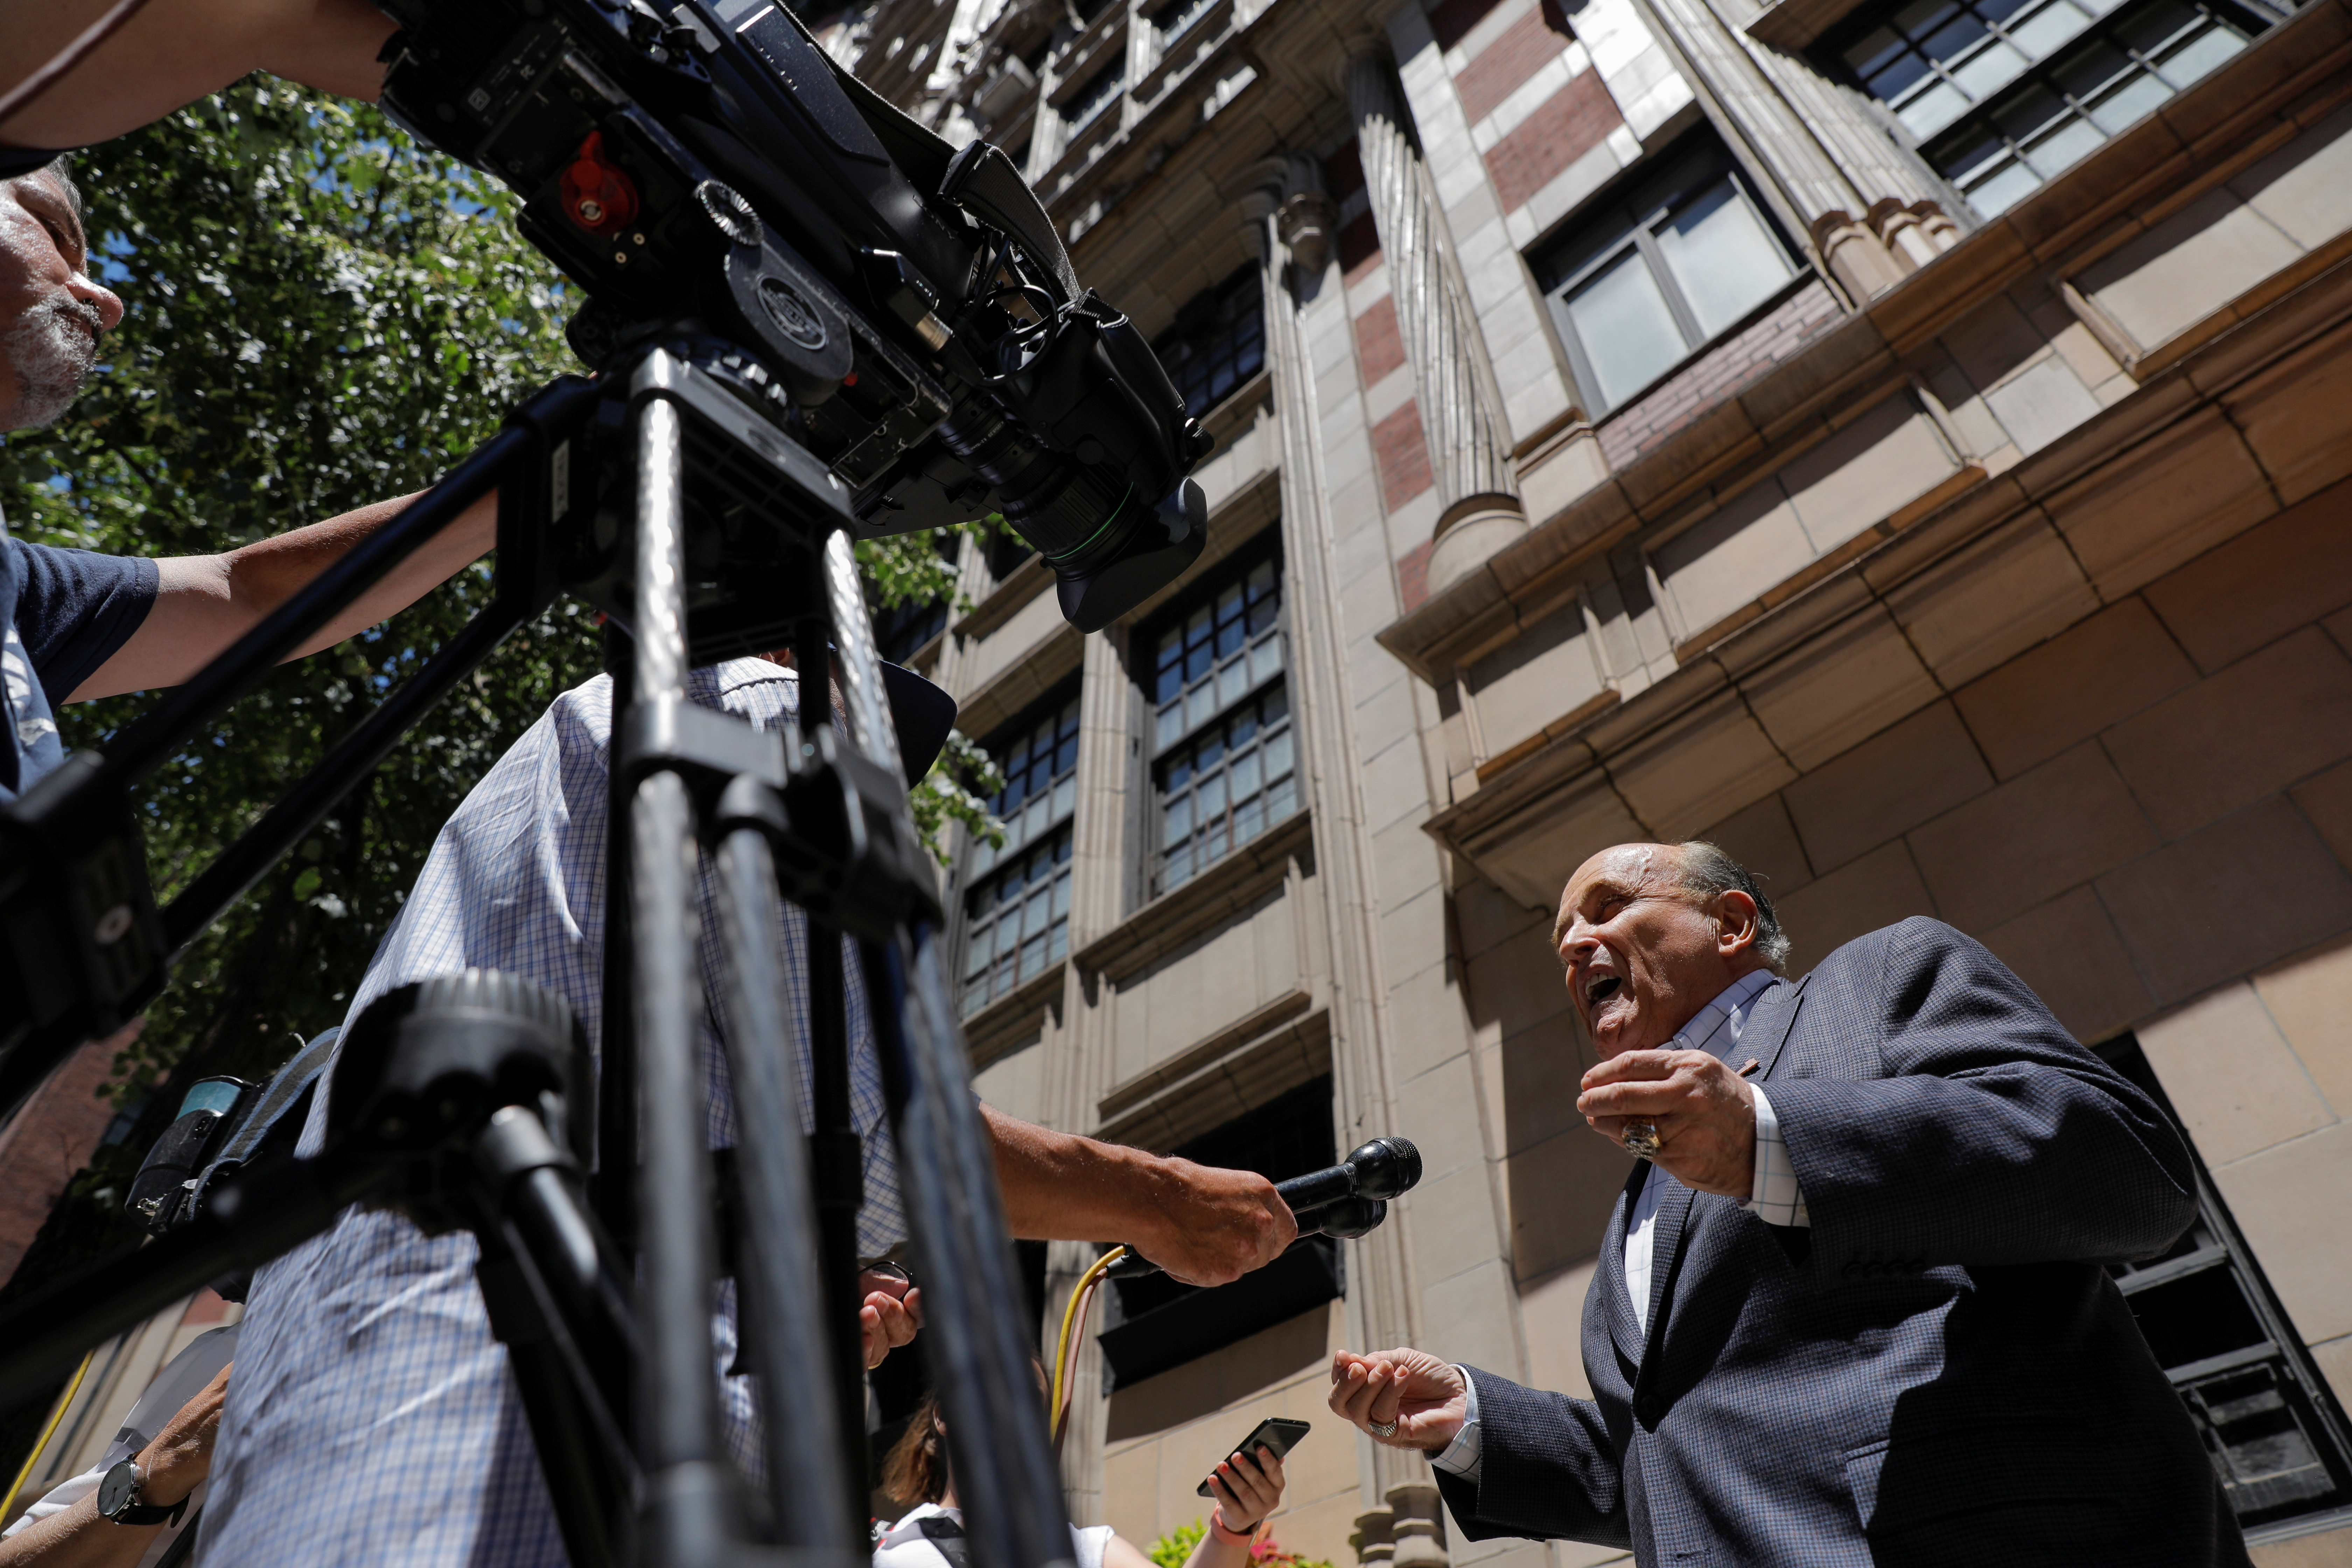 Former New York City Mayor Rudy Giuliani speaks to media outside his apartment building after the suspension of his law license in Manhattan in New York City, New York, U.S., June 24, 2021. REUTERS/Andrew Kelly